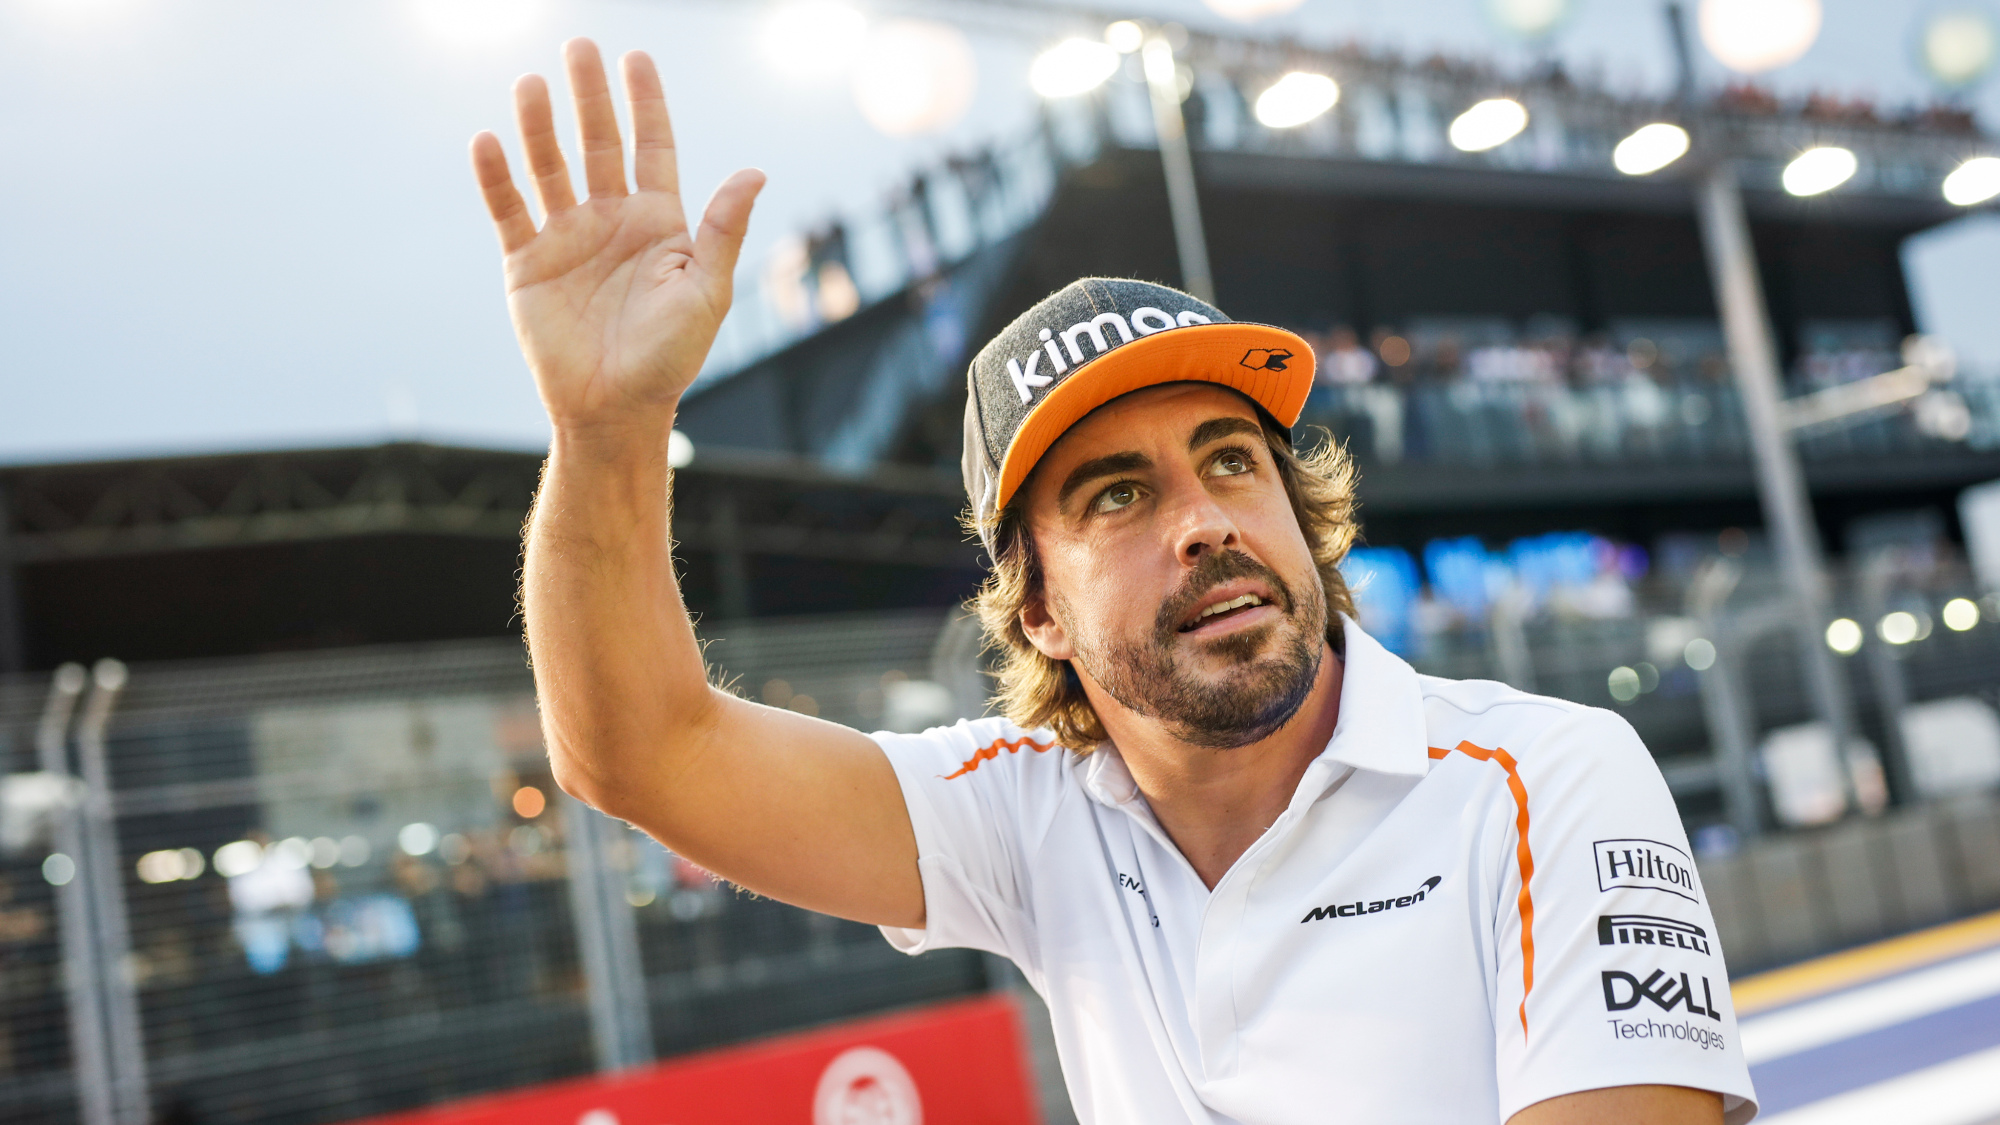 Confirmed: Fernando Alonso to make F1 return with Renault in 2021